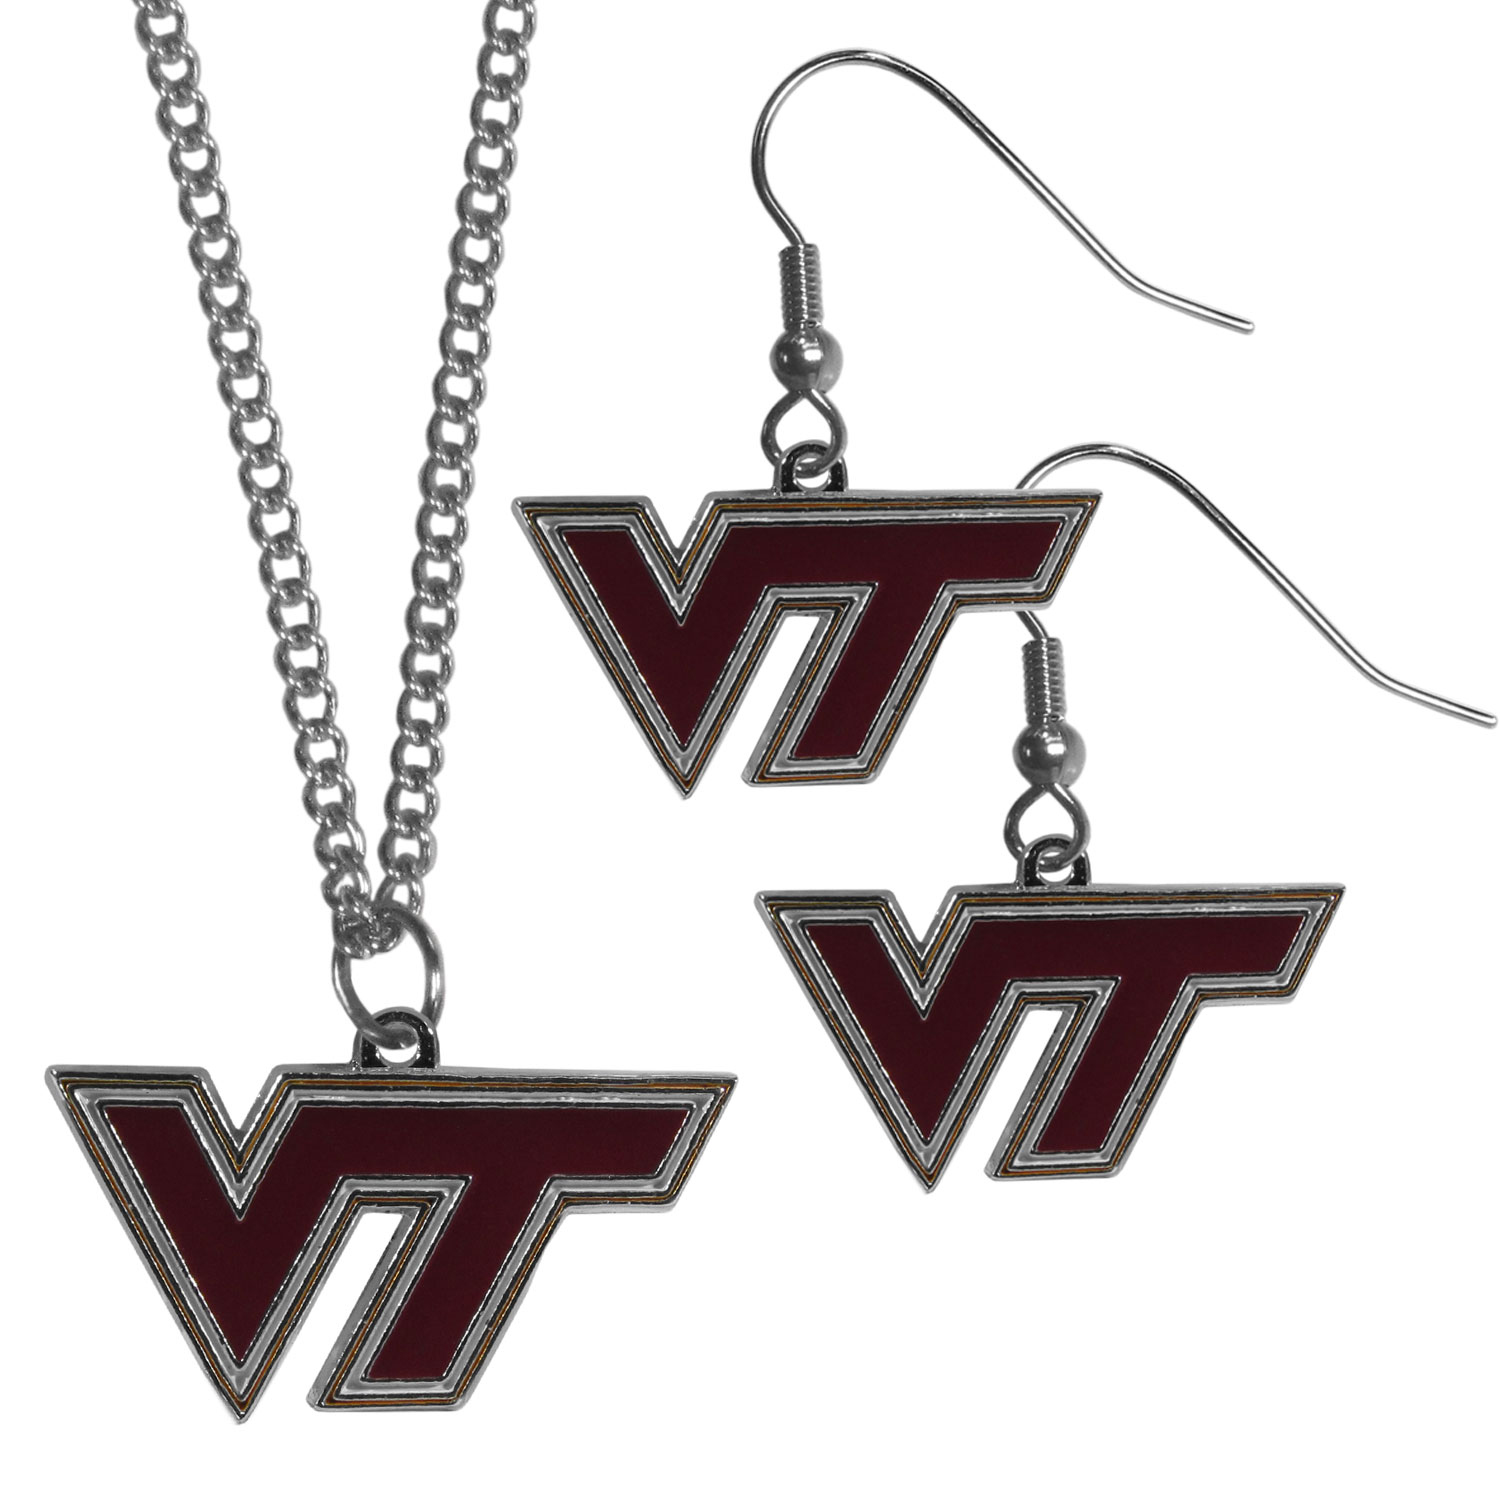 Virginia Tech Hokies Dangle Earrings and Chain Necklace Set - This classic jewelry set contains are most popular Virginia Tech Hokies dangle earrings and 22 inch chain necklace. The trendy, dangle earrings are lightweight and feature a fully cast metal team charm with enameled team colors. The matching necklace completes this fashion forward combo and is a spirited set that is perfect for game day but nice enough for everyday.